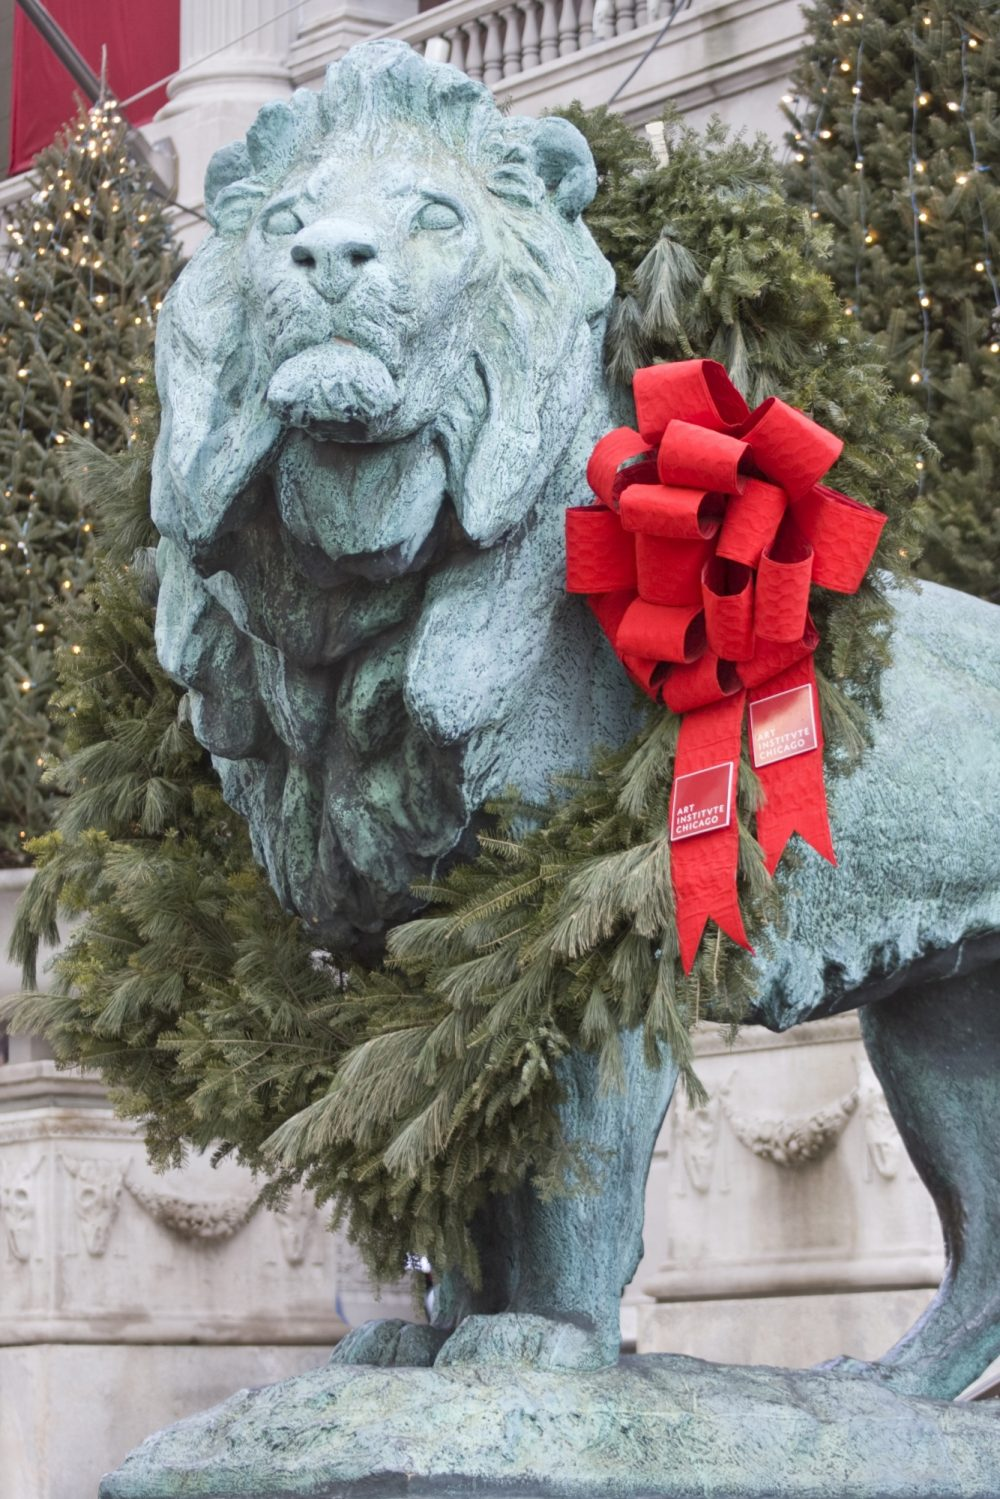 One of the lions that guards the entrance to the Art Institute of Chicago is decorated with a holiday bow.